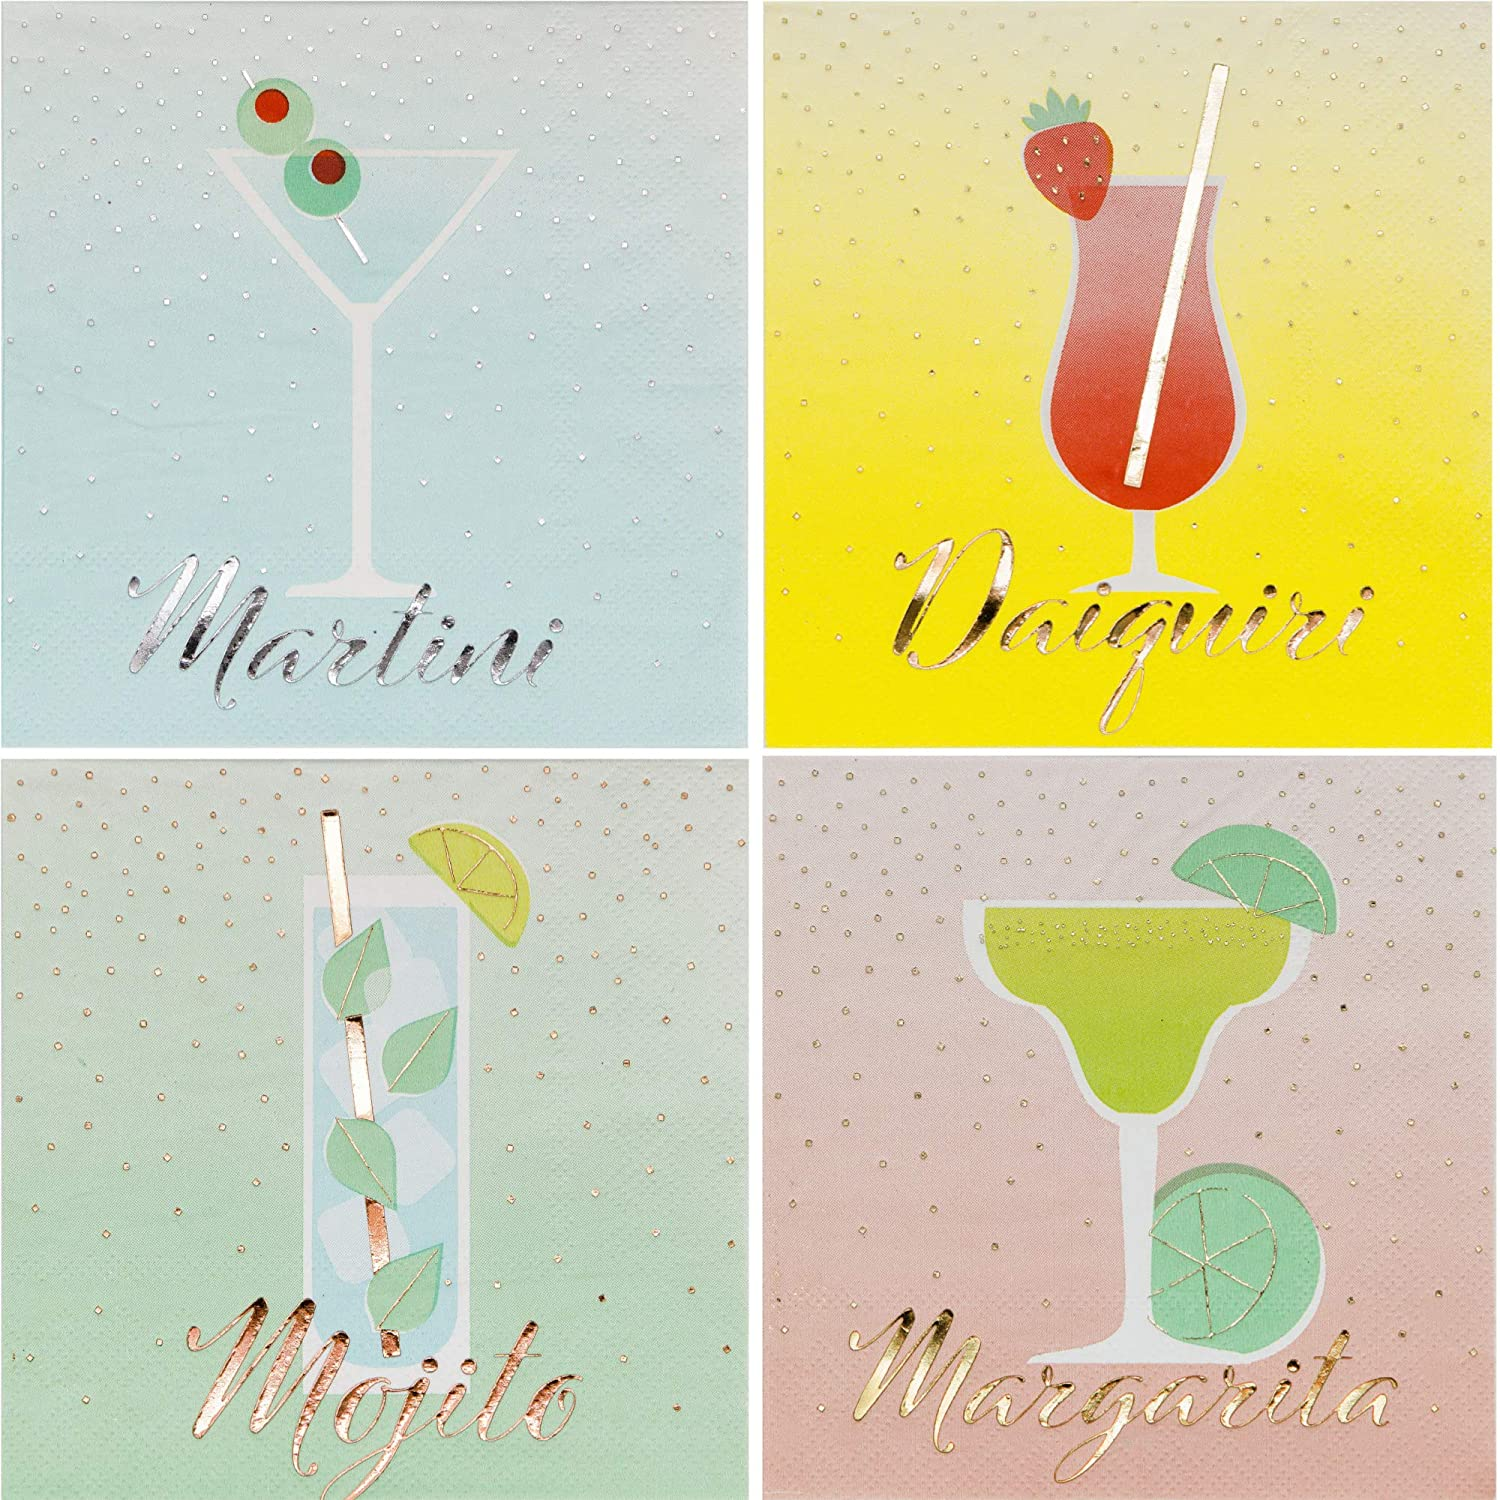 Fun Cocktail Themed Beverage Napkins Ladies Night Variety Pack   Bundle Includes 96 Total Paper Napkins in 4 Different Designs